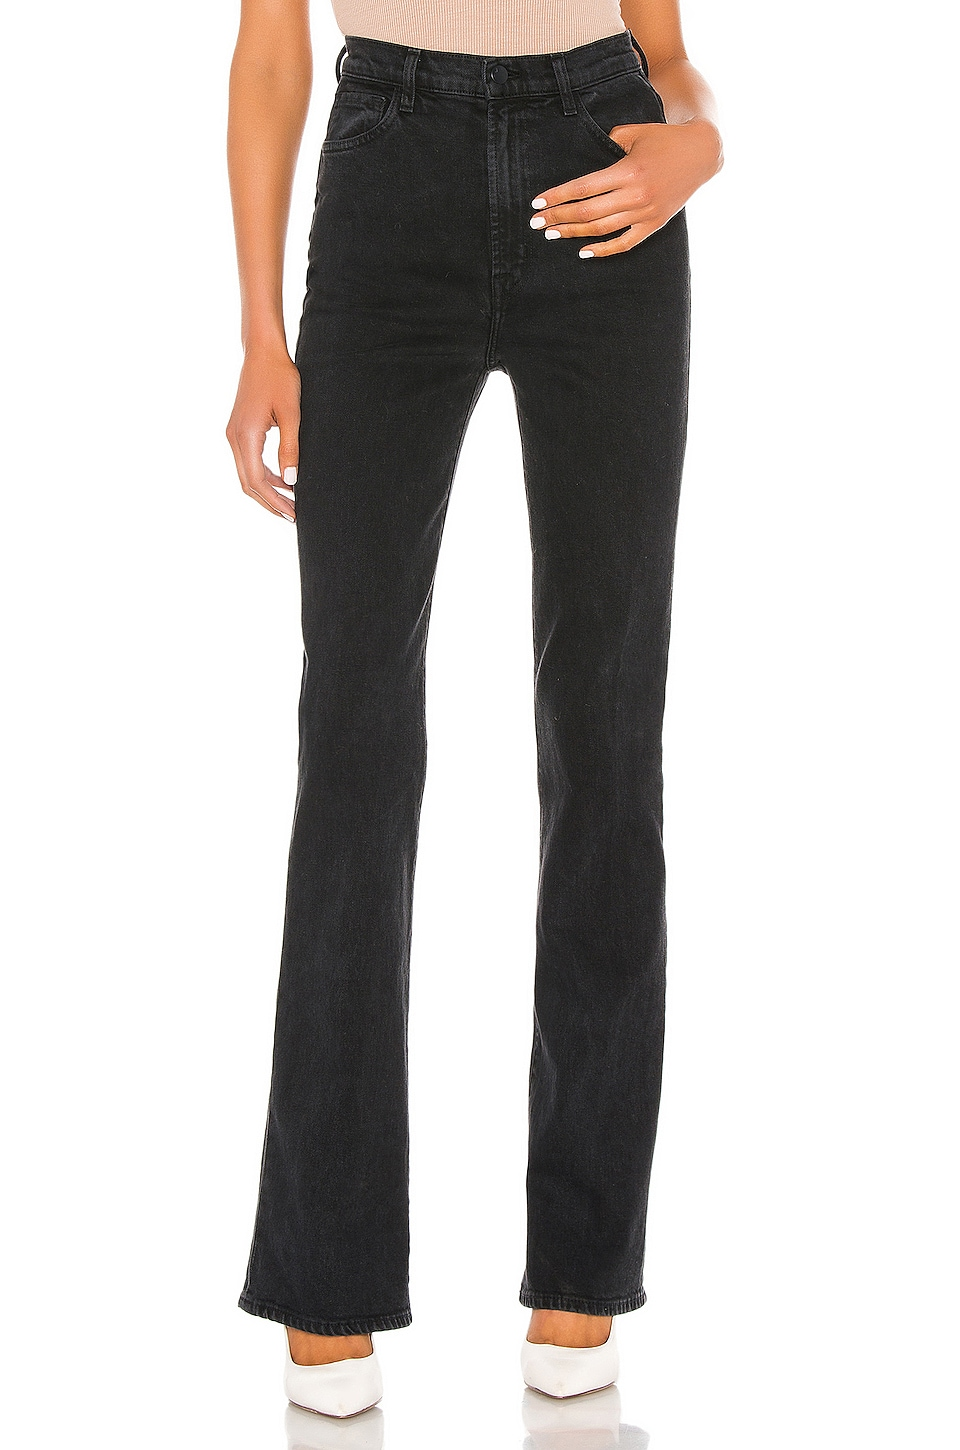 J Brand 1219 Runway High Rise Bootcut in Undercover